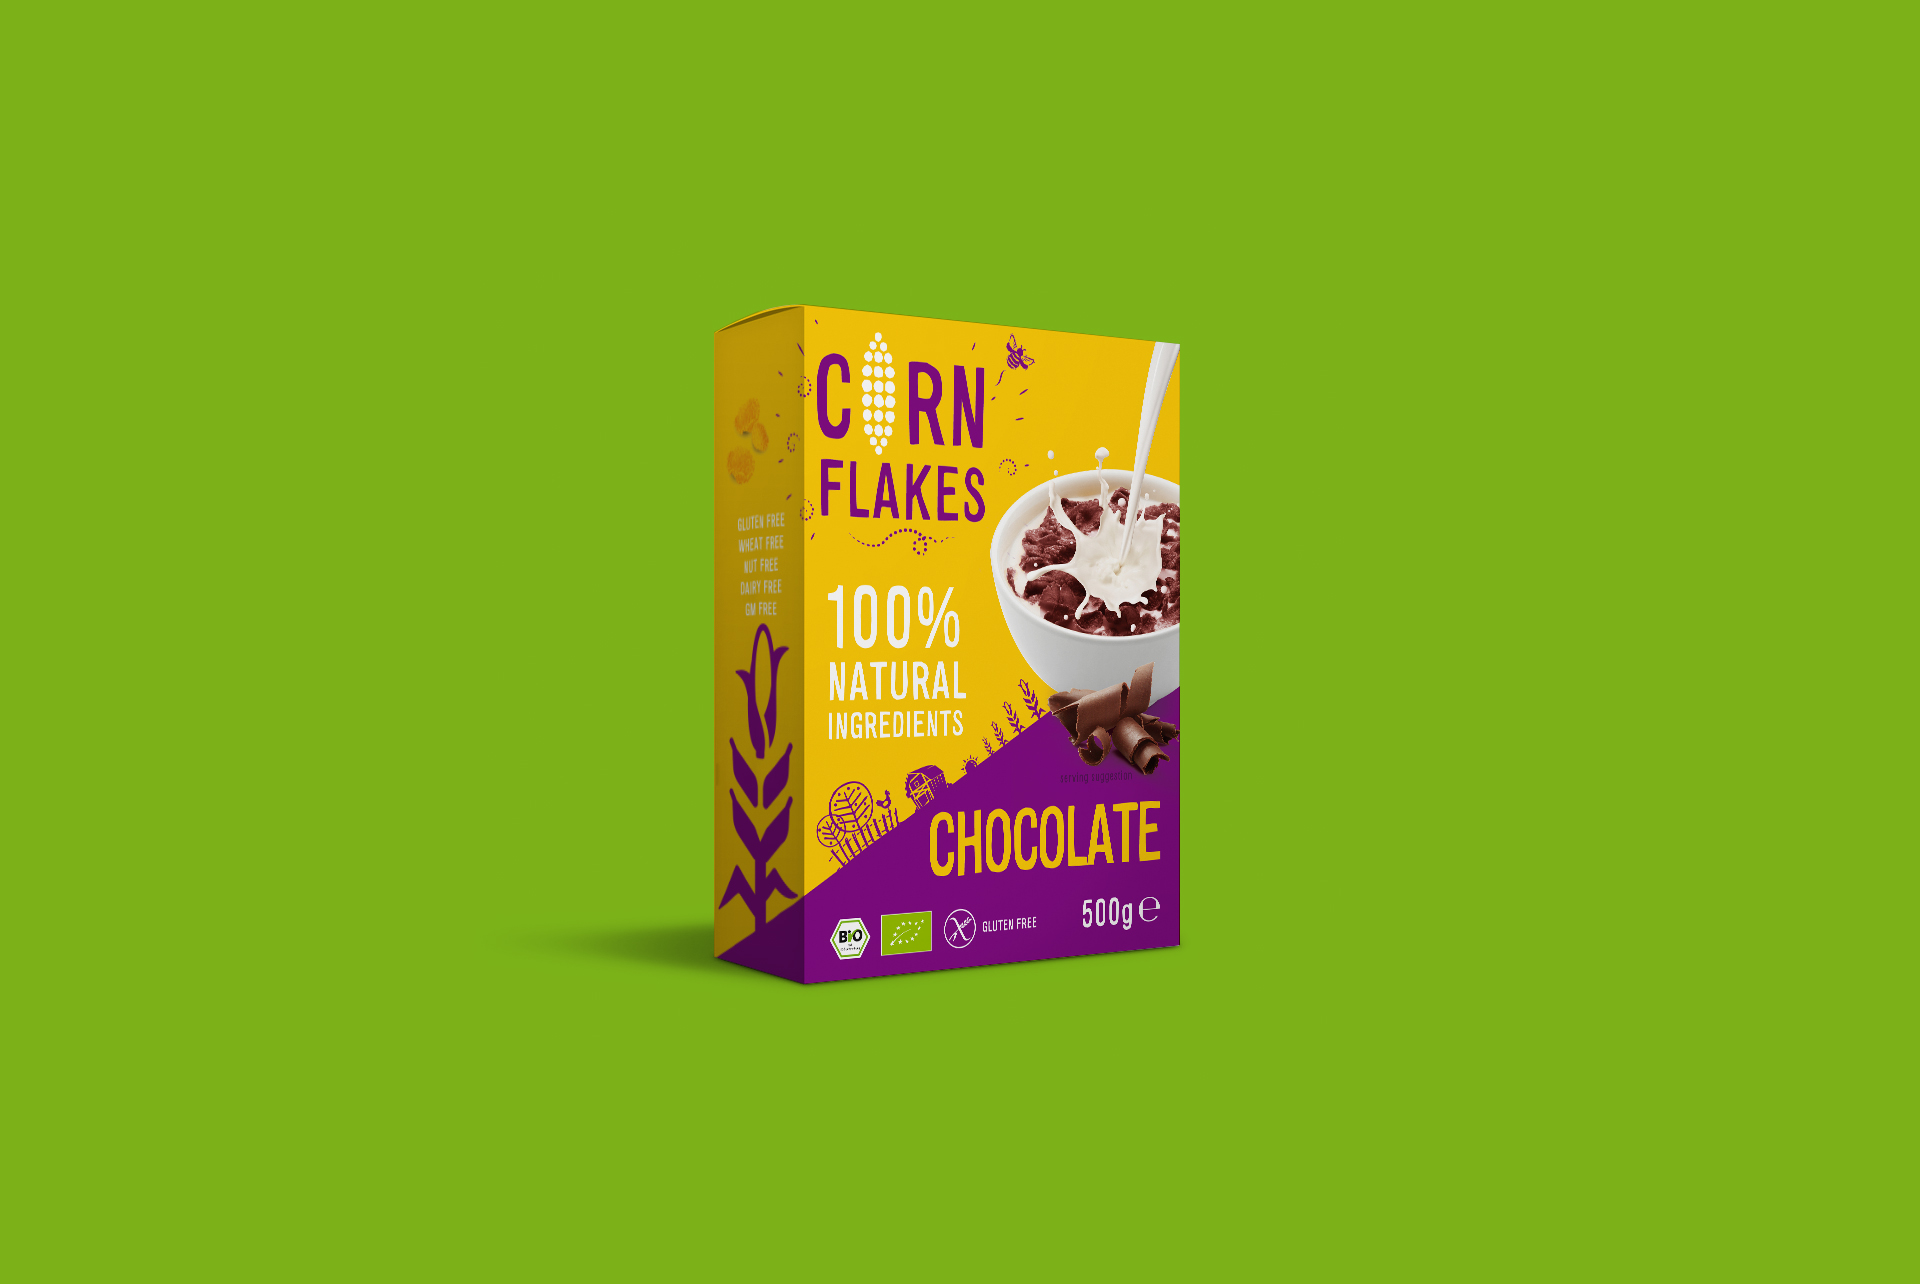 Corn Flakes Chocolate Packaging Design